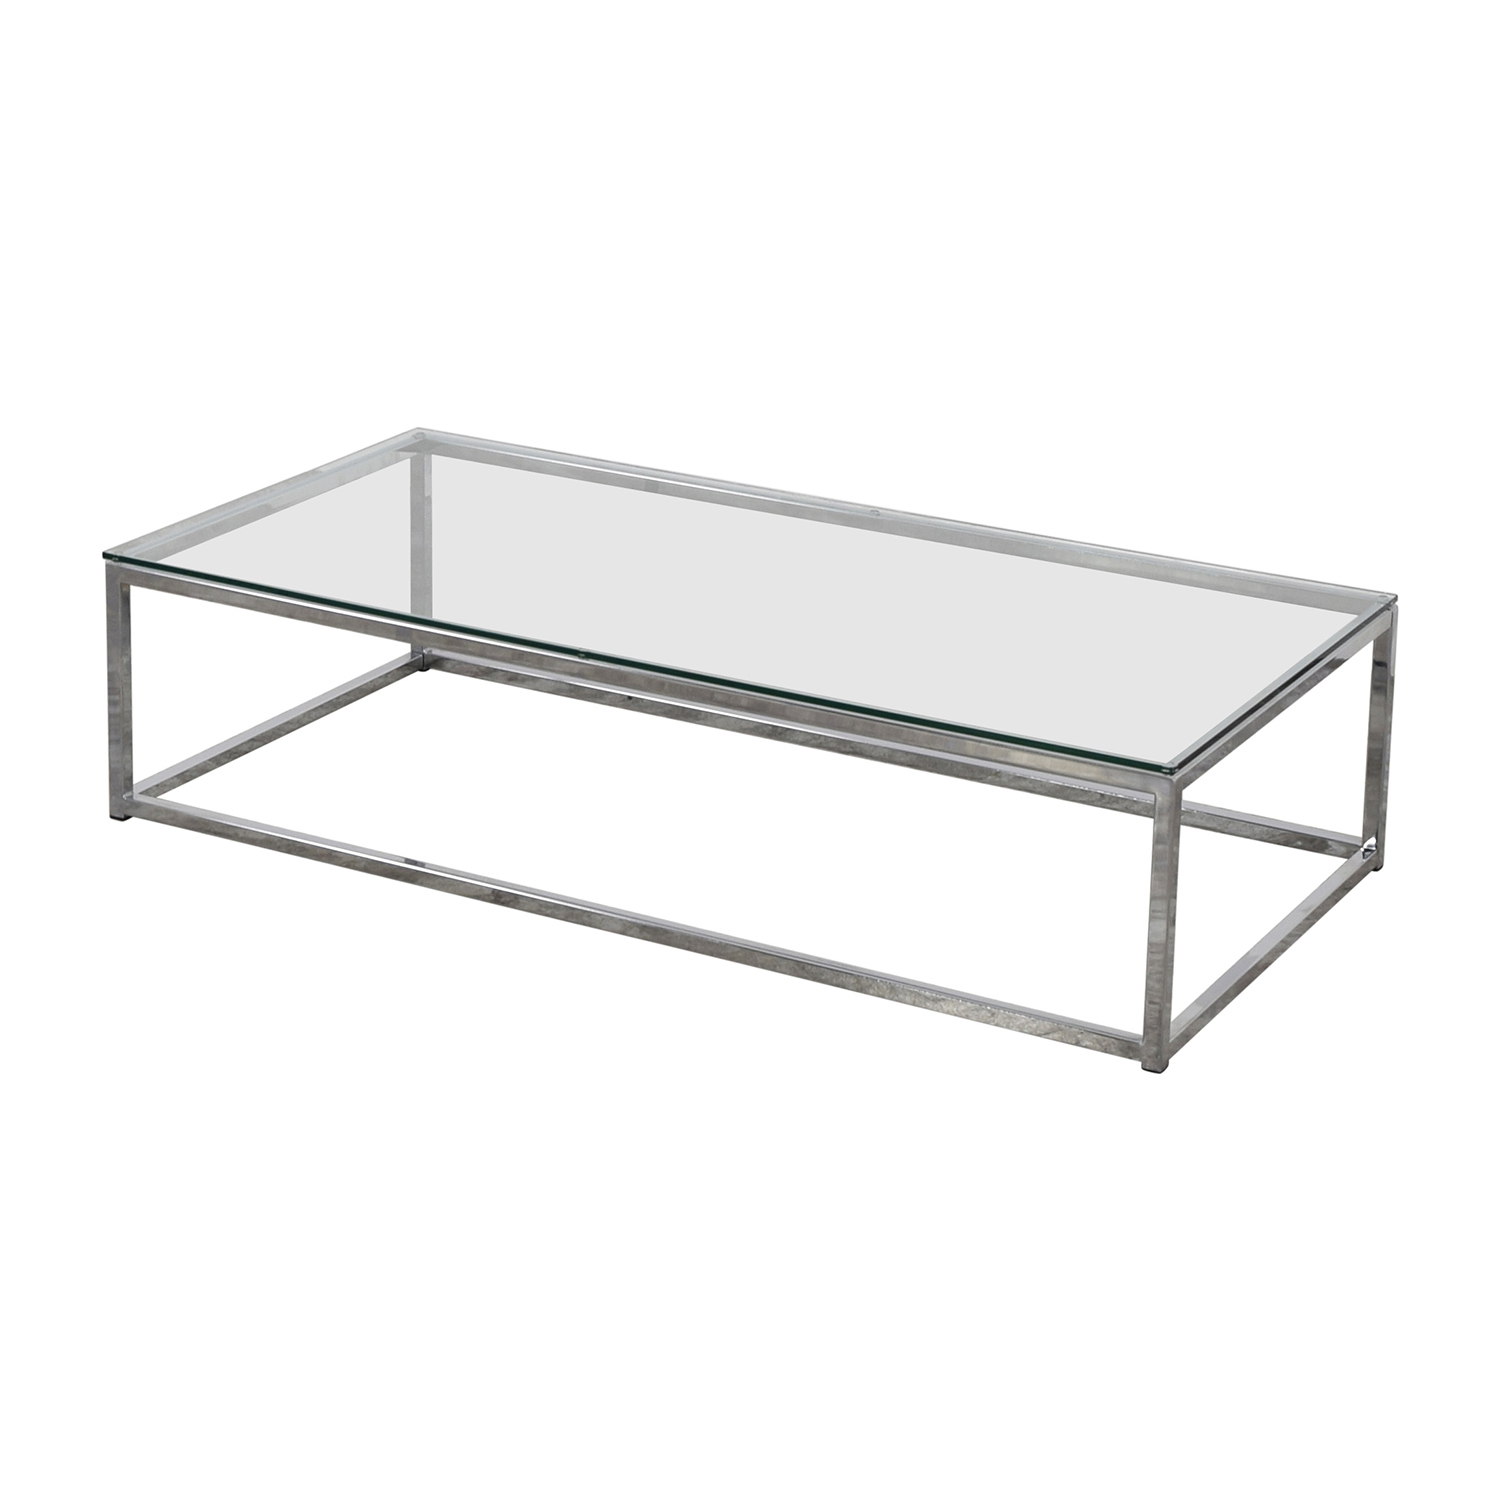 Chrome Coffee Table 45 Off Cb2 Cb2 Glass And Chrome Coffee Table Tables